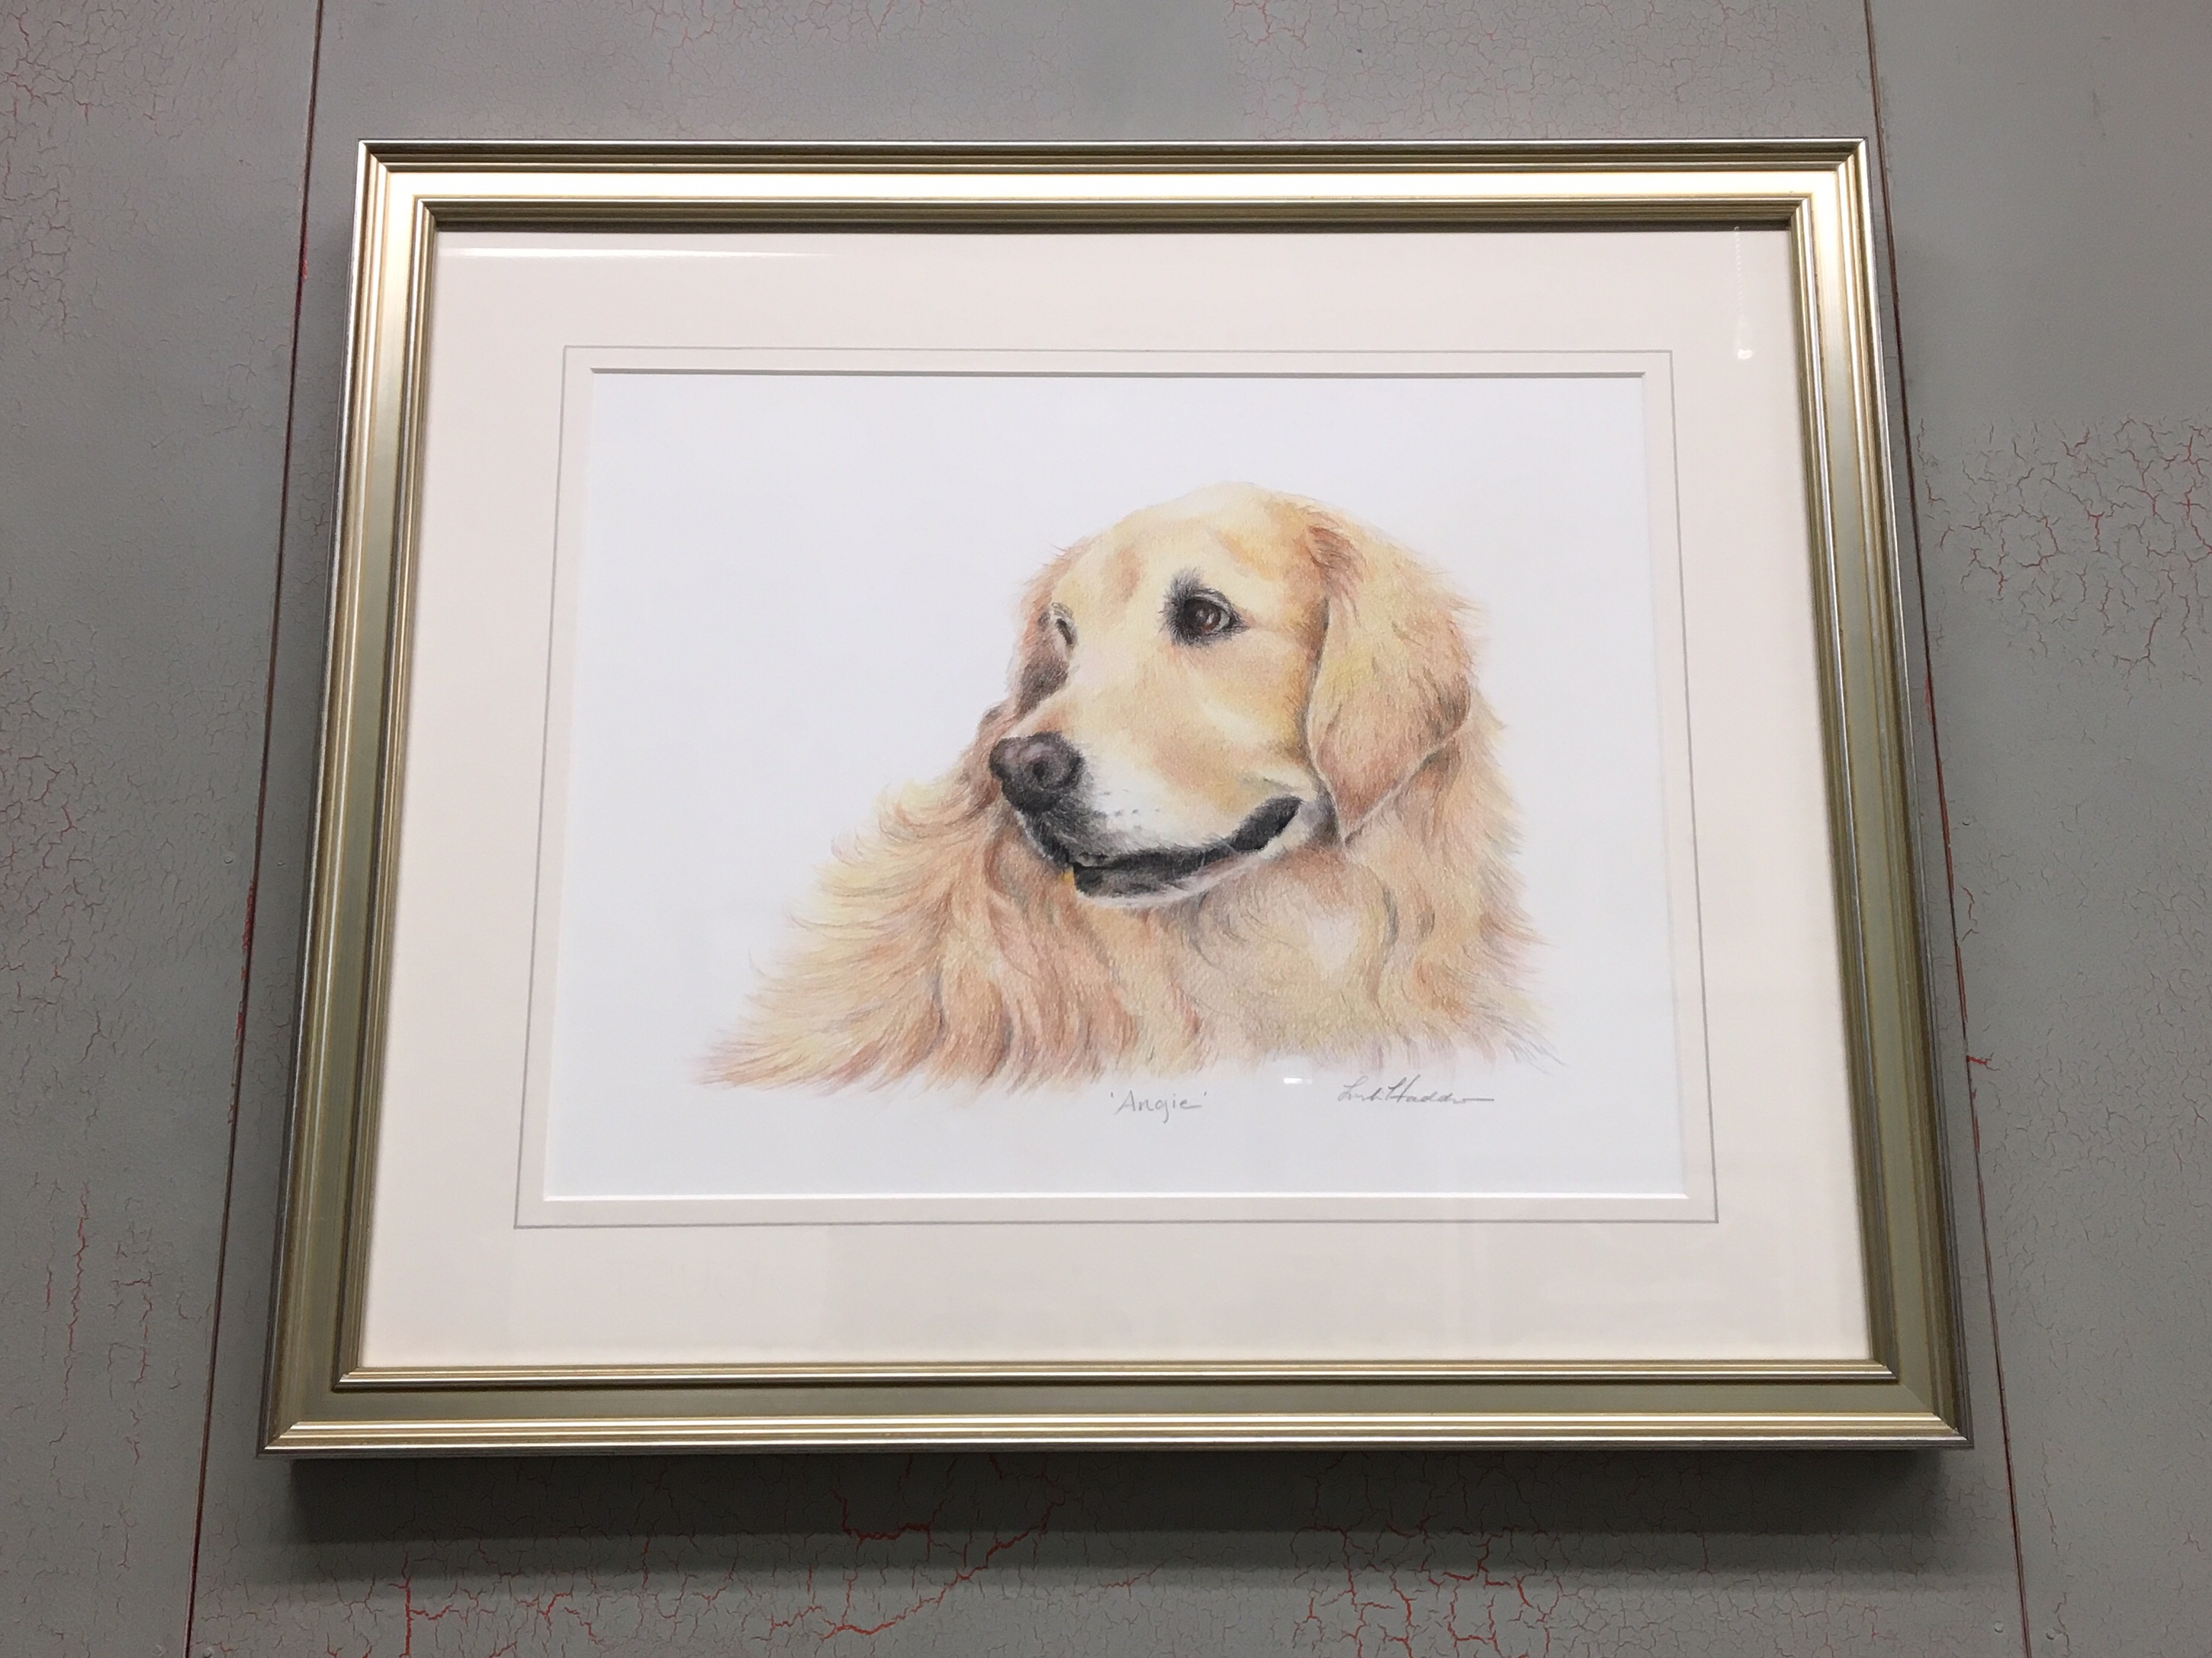 Charming Pet Portrait in an Antique Silver Custom Frame by Studio Moulding